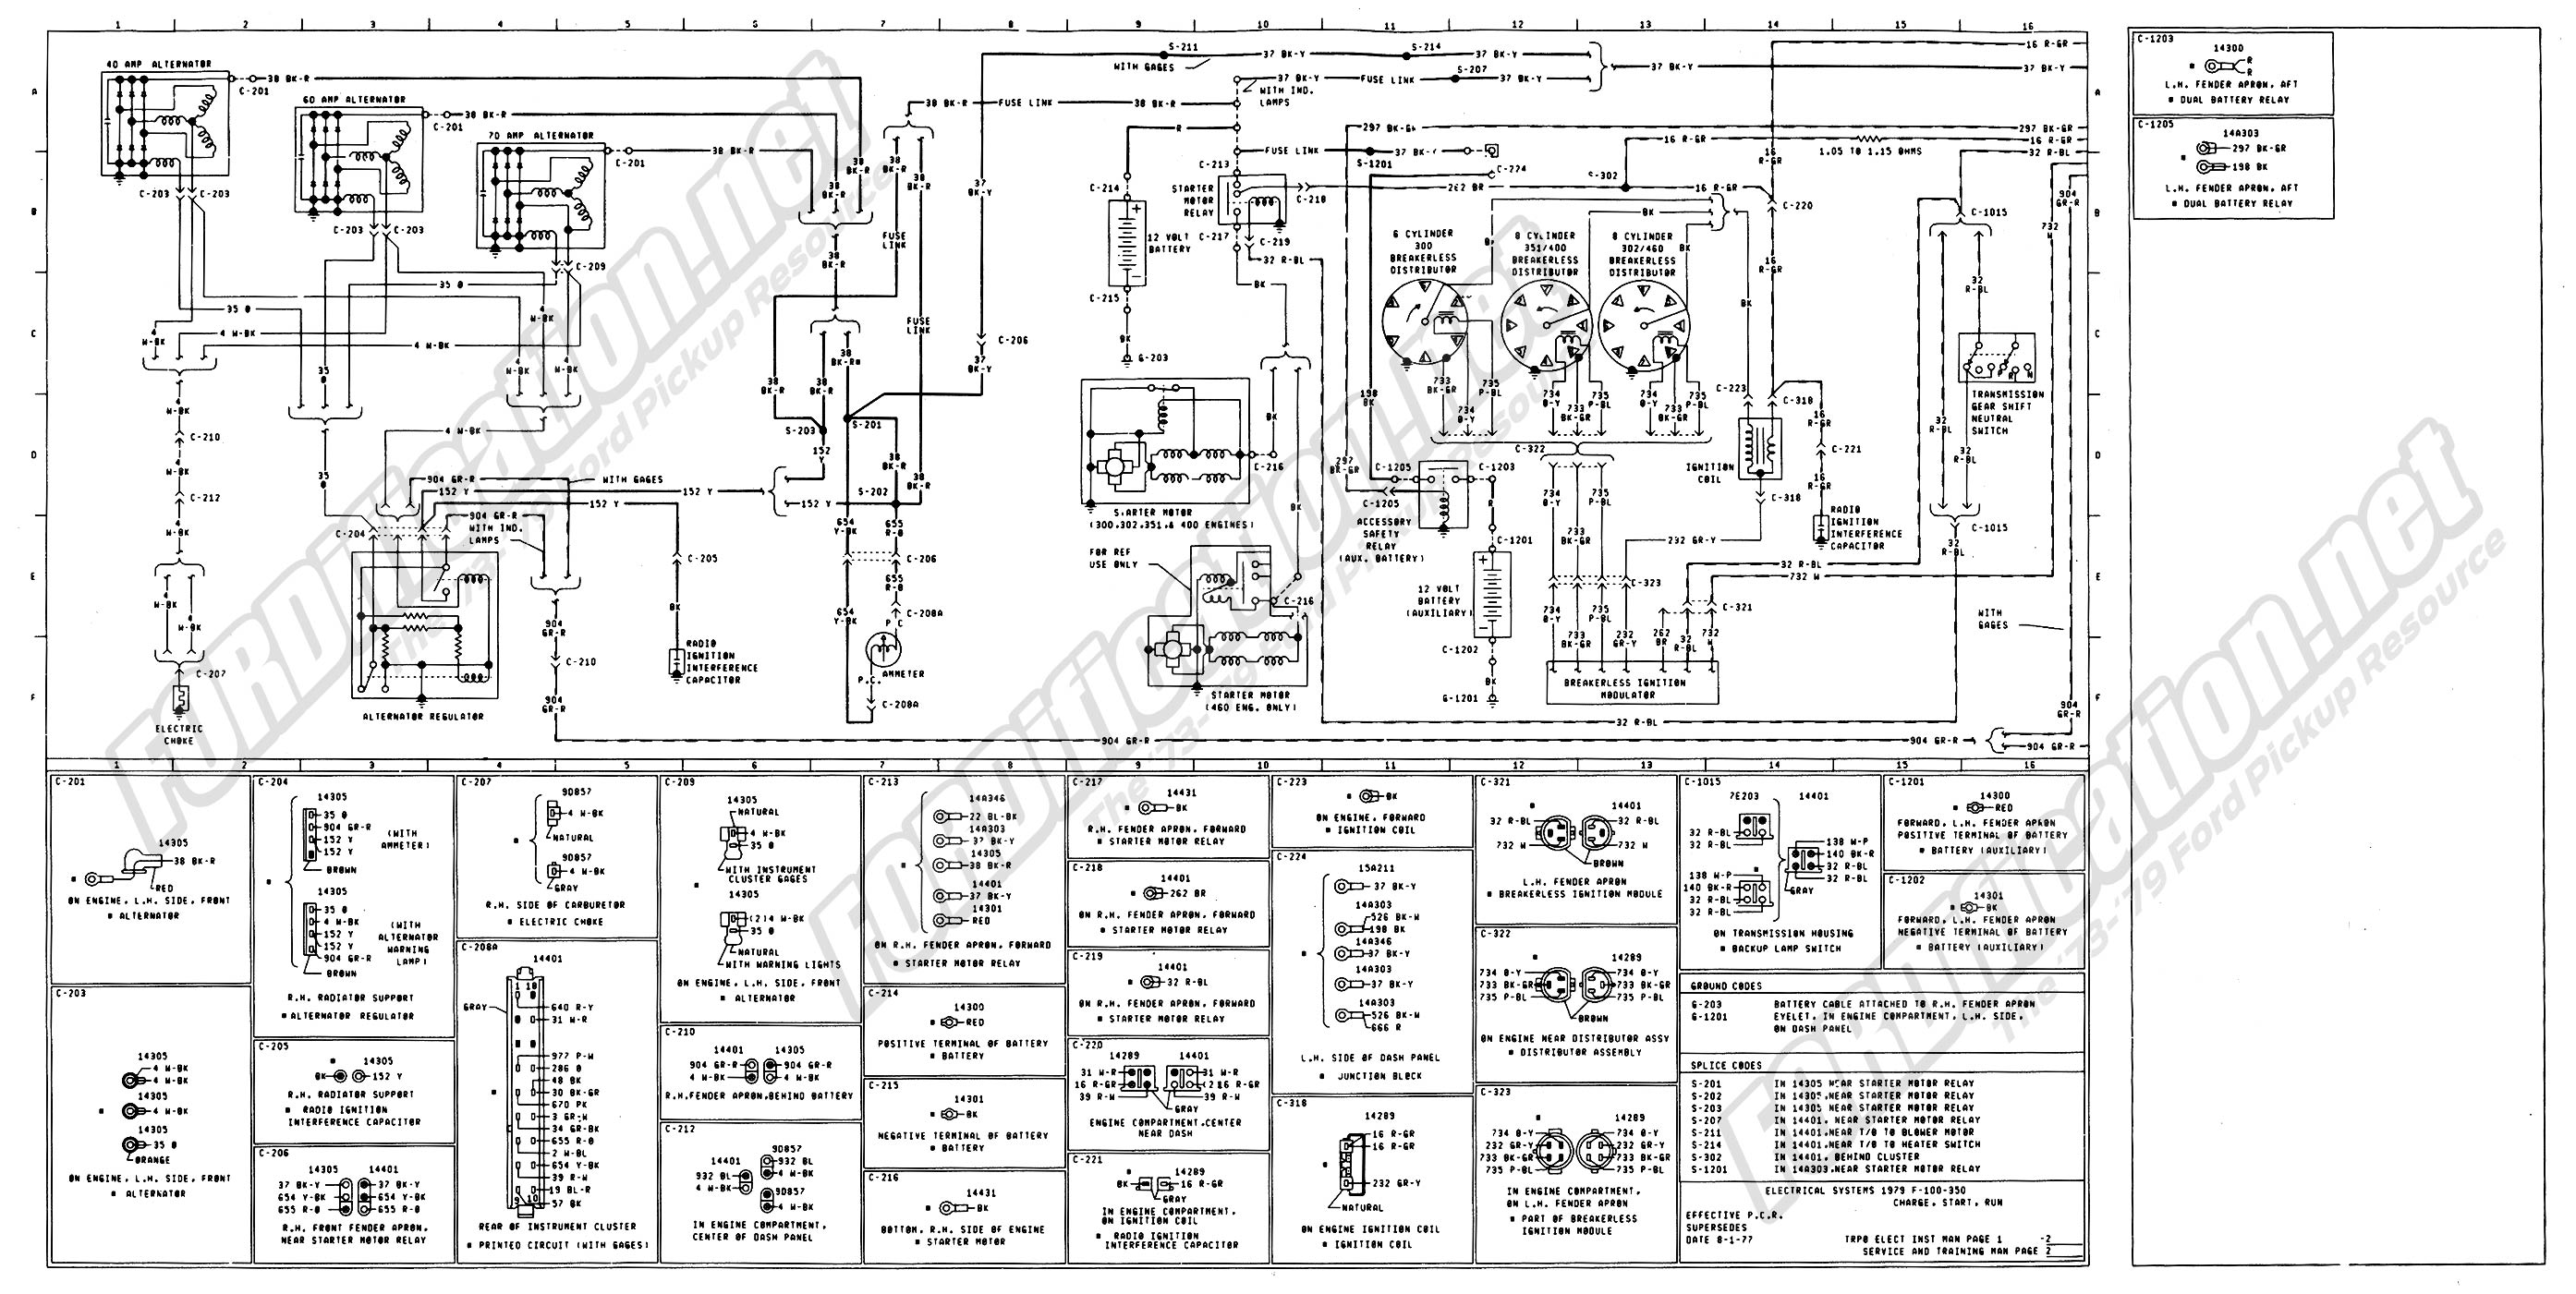 2006 E250 Fuse Diagram Wiring Will Be A Thing Ford Econoline 250 Box 1979 F600 Dump Truck Enthusiasts Forums